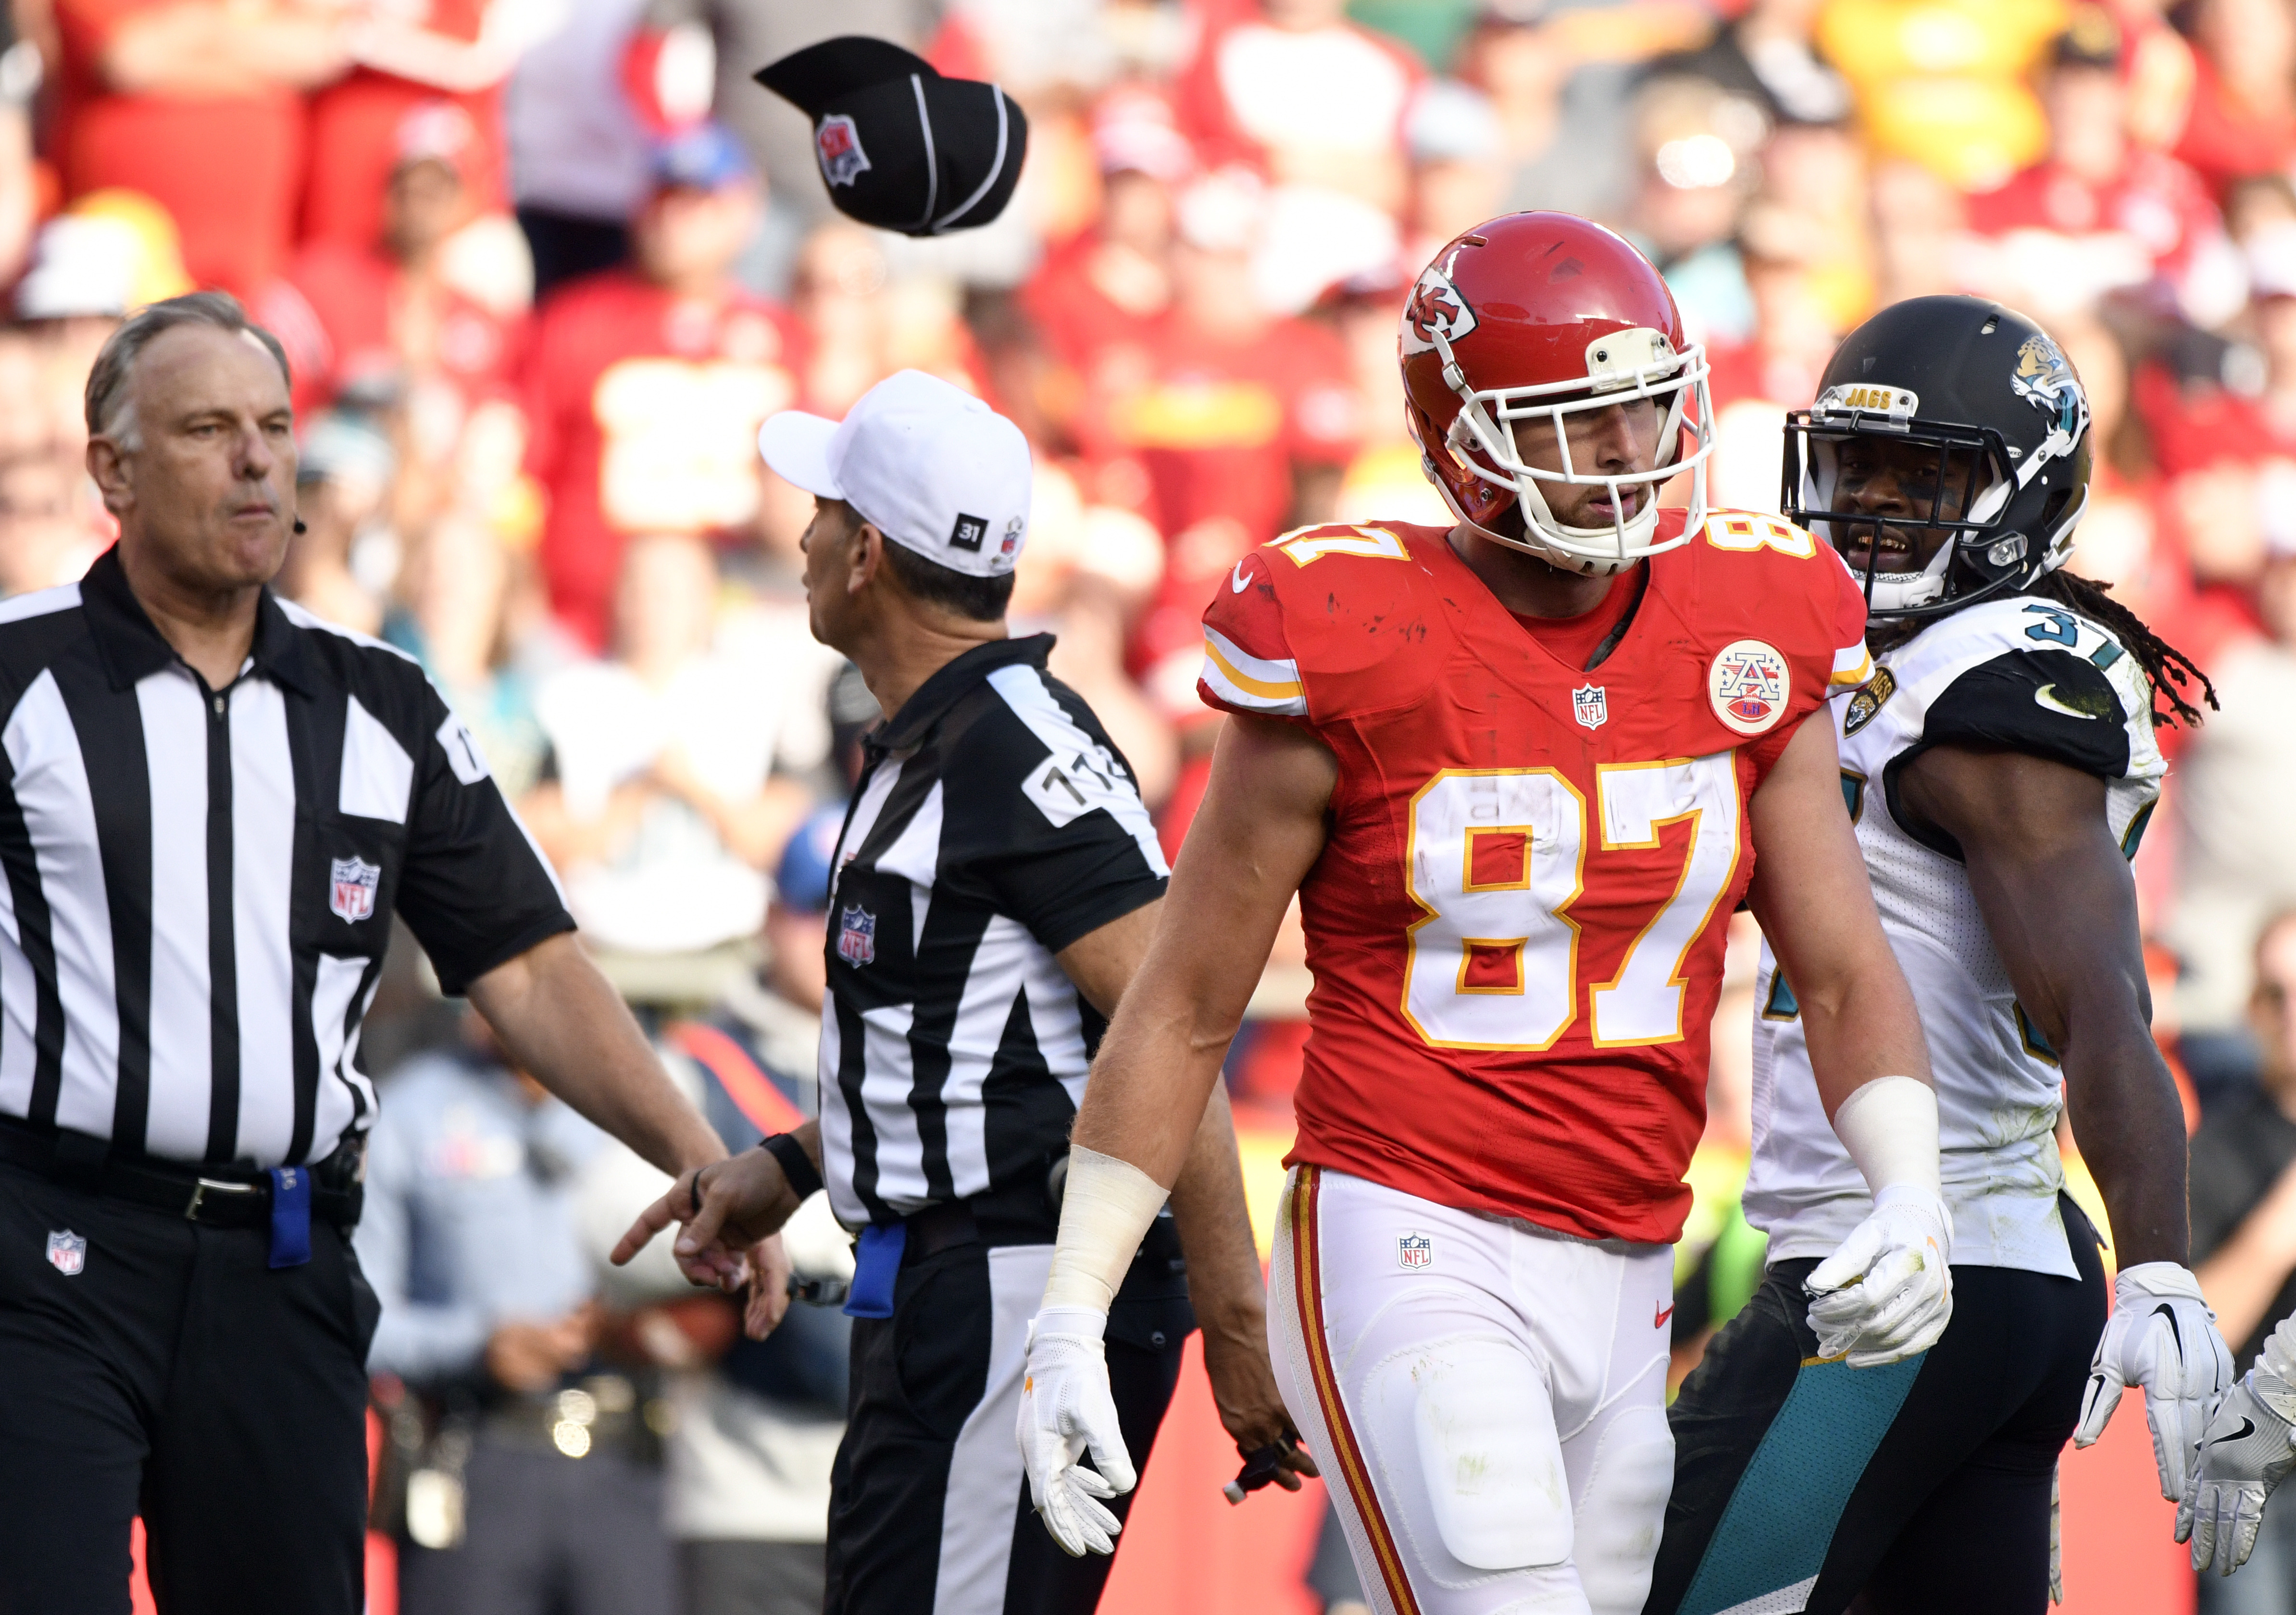 FILE - In this Nov. 6, 2016, file photo, field Judge Mike Weatherford, left, throws his cap toward Kansas City Chiefs tight end Travis Kelce (87) after Kelce, who was ejected for unsportsmanlike conduct, threw a towel in his direction during the second ha